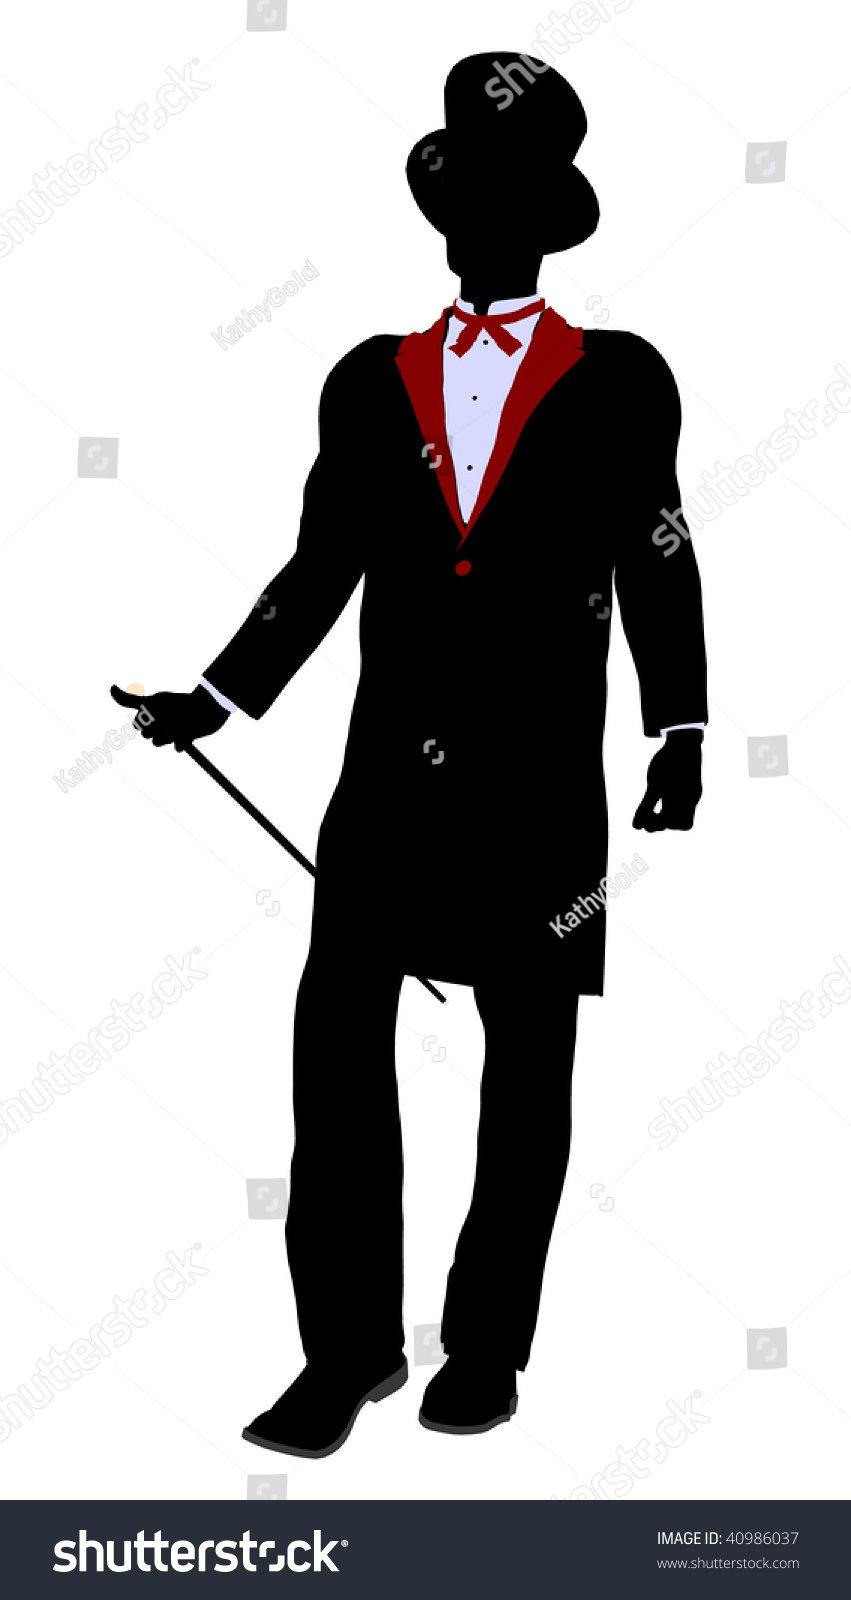 Male Magician Silhouette Illustration On A White ...